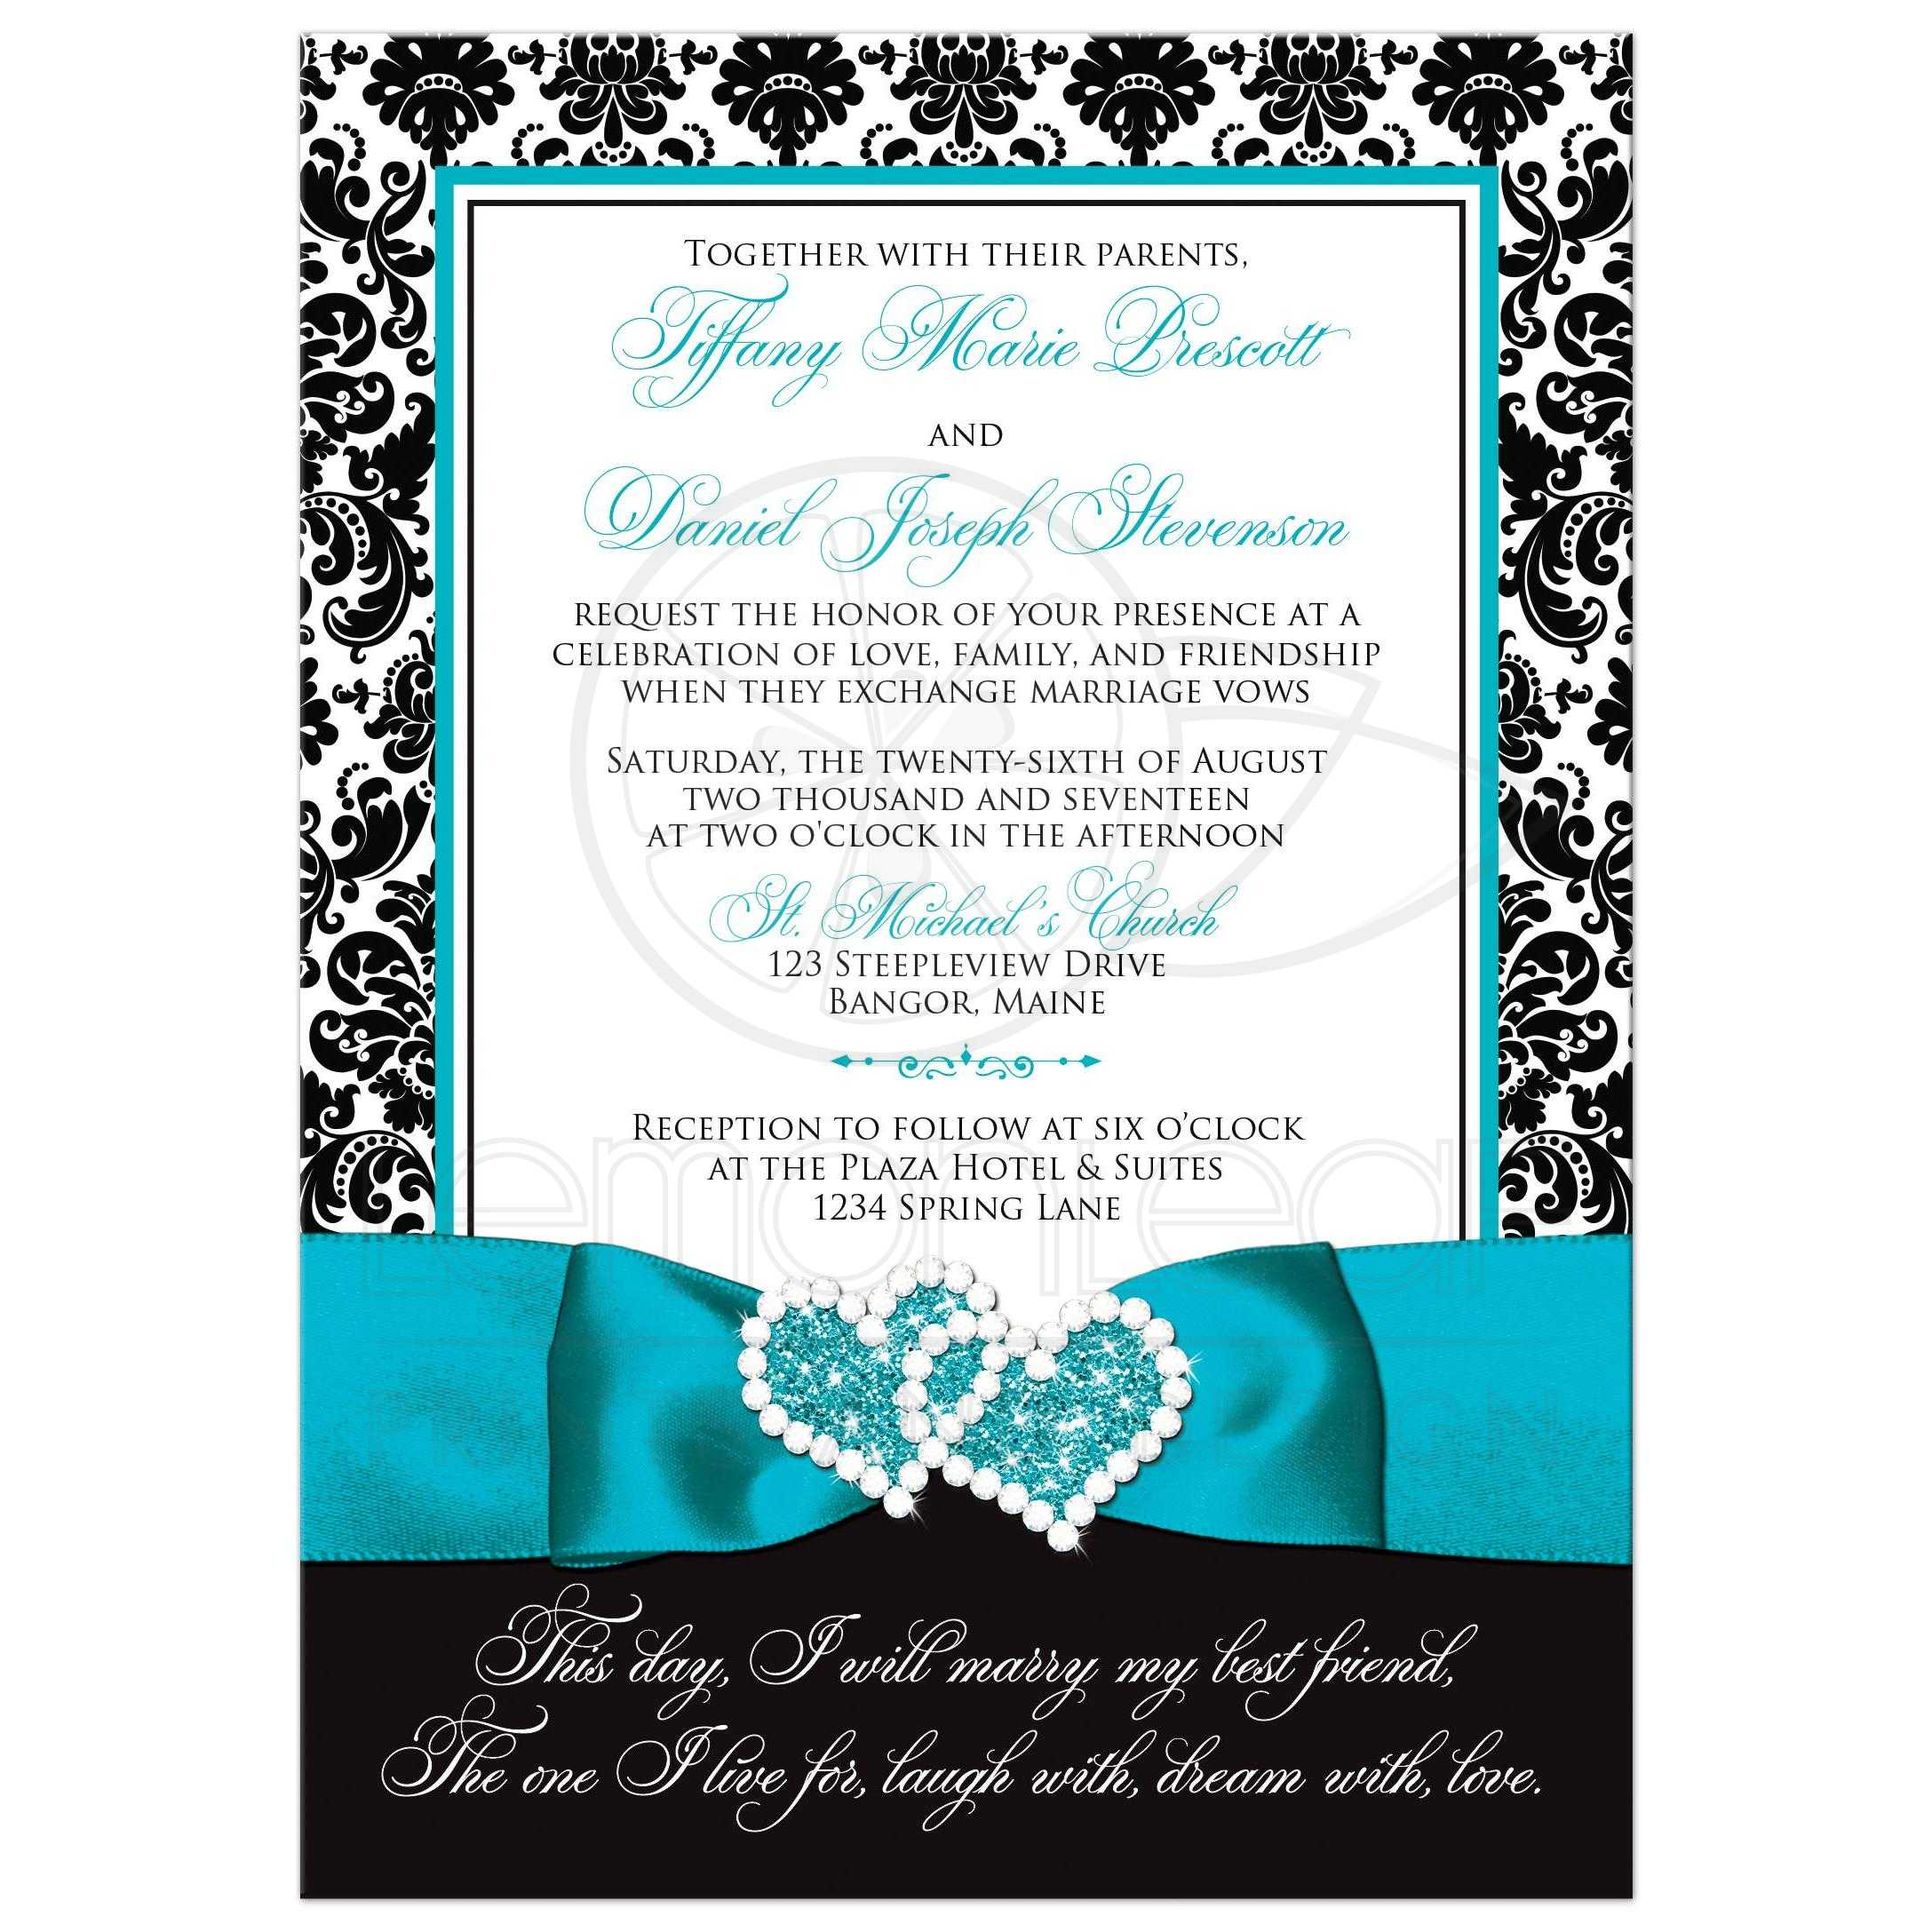 Wedding invitation photo optional black and white damask black and white damask wedding invitation with aqua blue ribbon and joined hearts filmwisefo